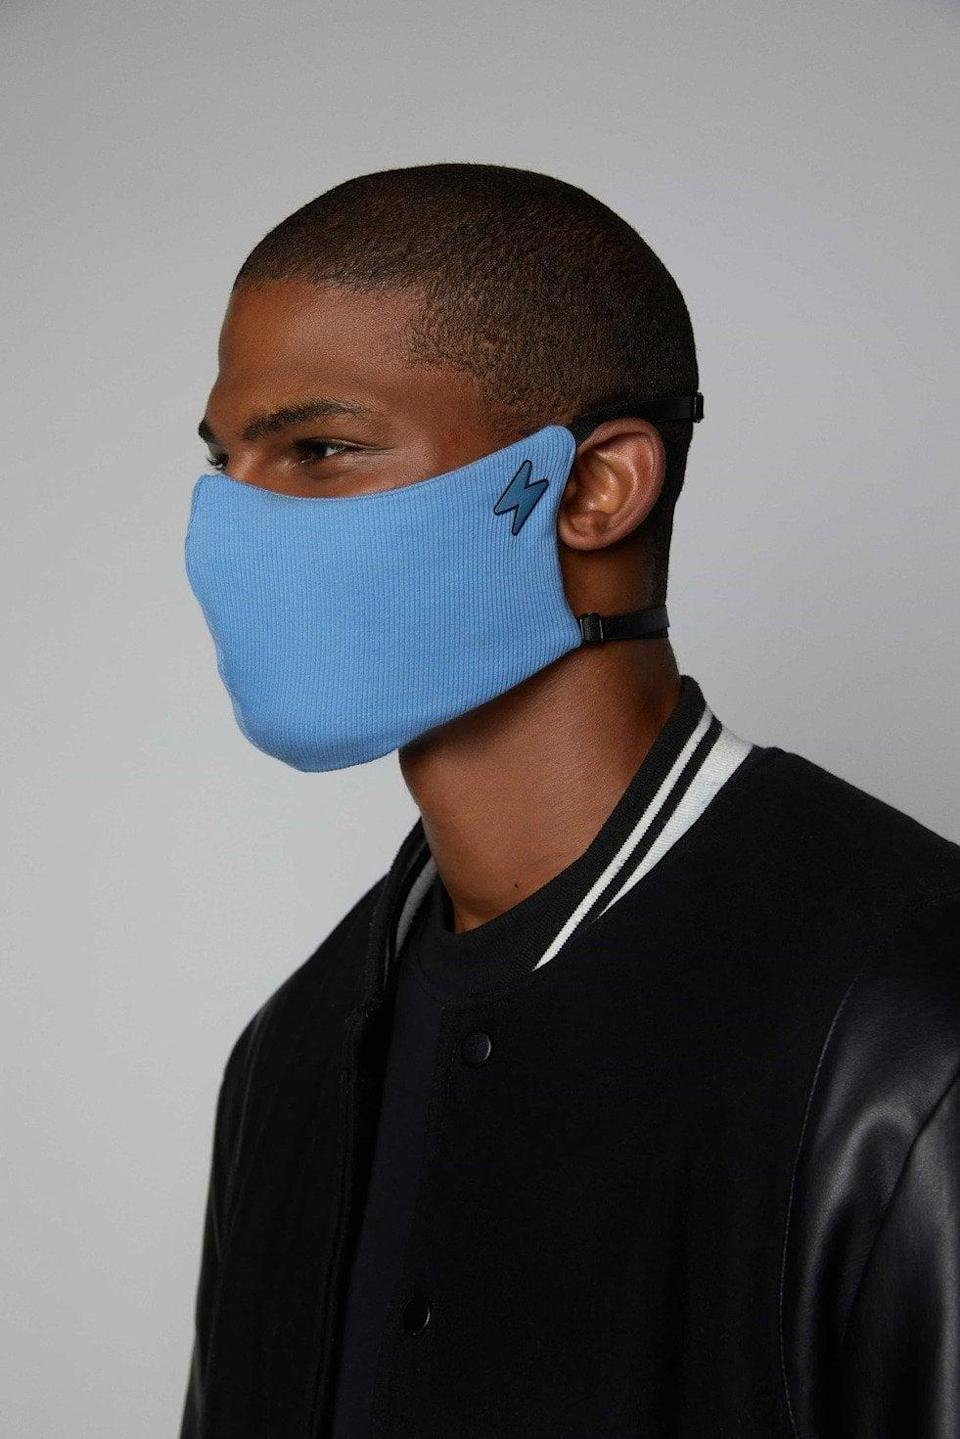 <p>The <span>Ari Jogiel The Voyager Mask</span> ($28) is a three-layer face covering that features a customized fit to offer optimal protection to those who wear it. A portion of the sales goes to The Conscious Kid Foundation, which helps fight racism in schools.</p>